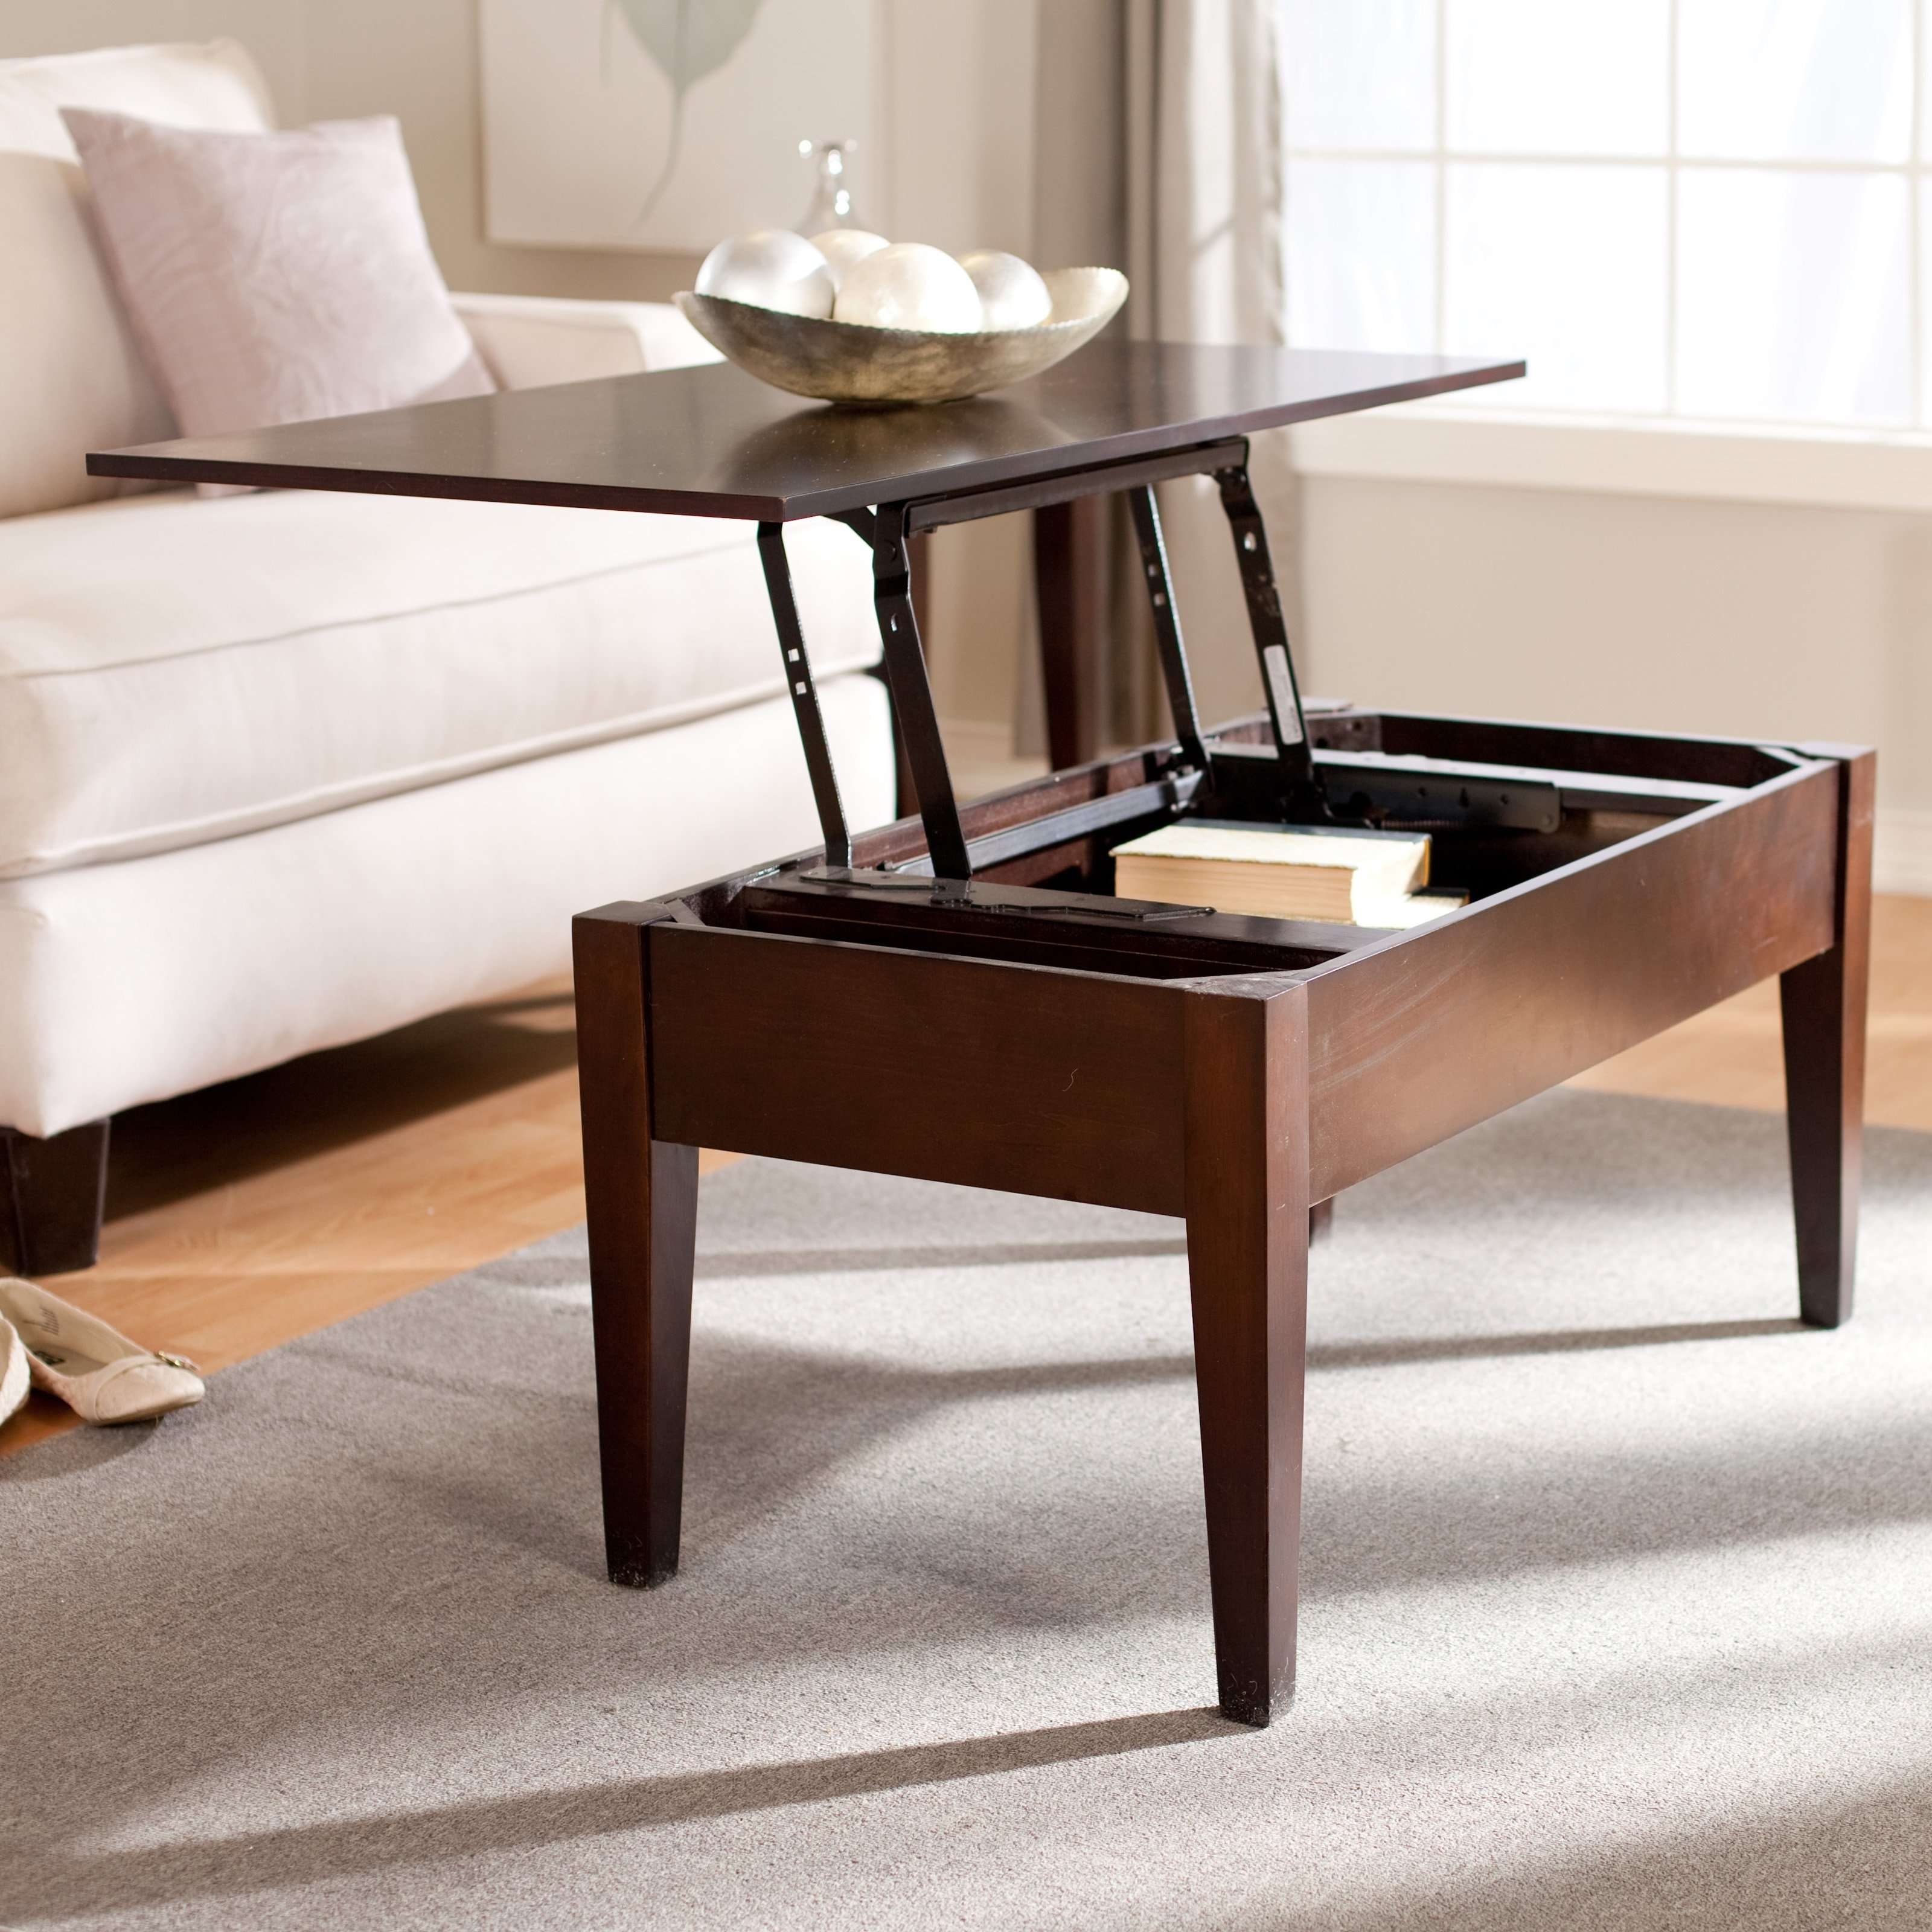 2018 Popular Coffee Tables Extendable Top